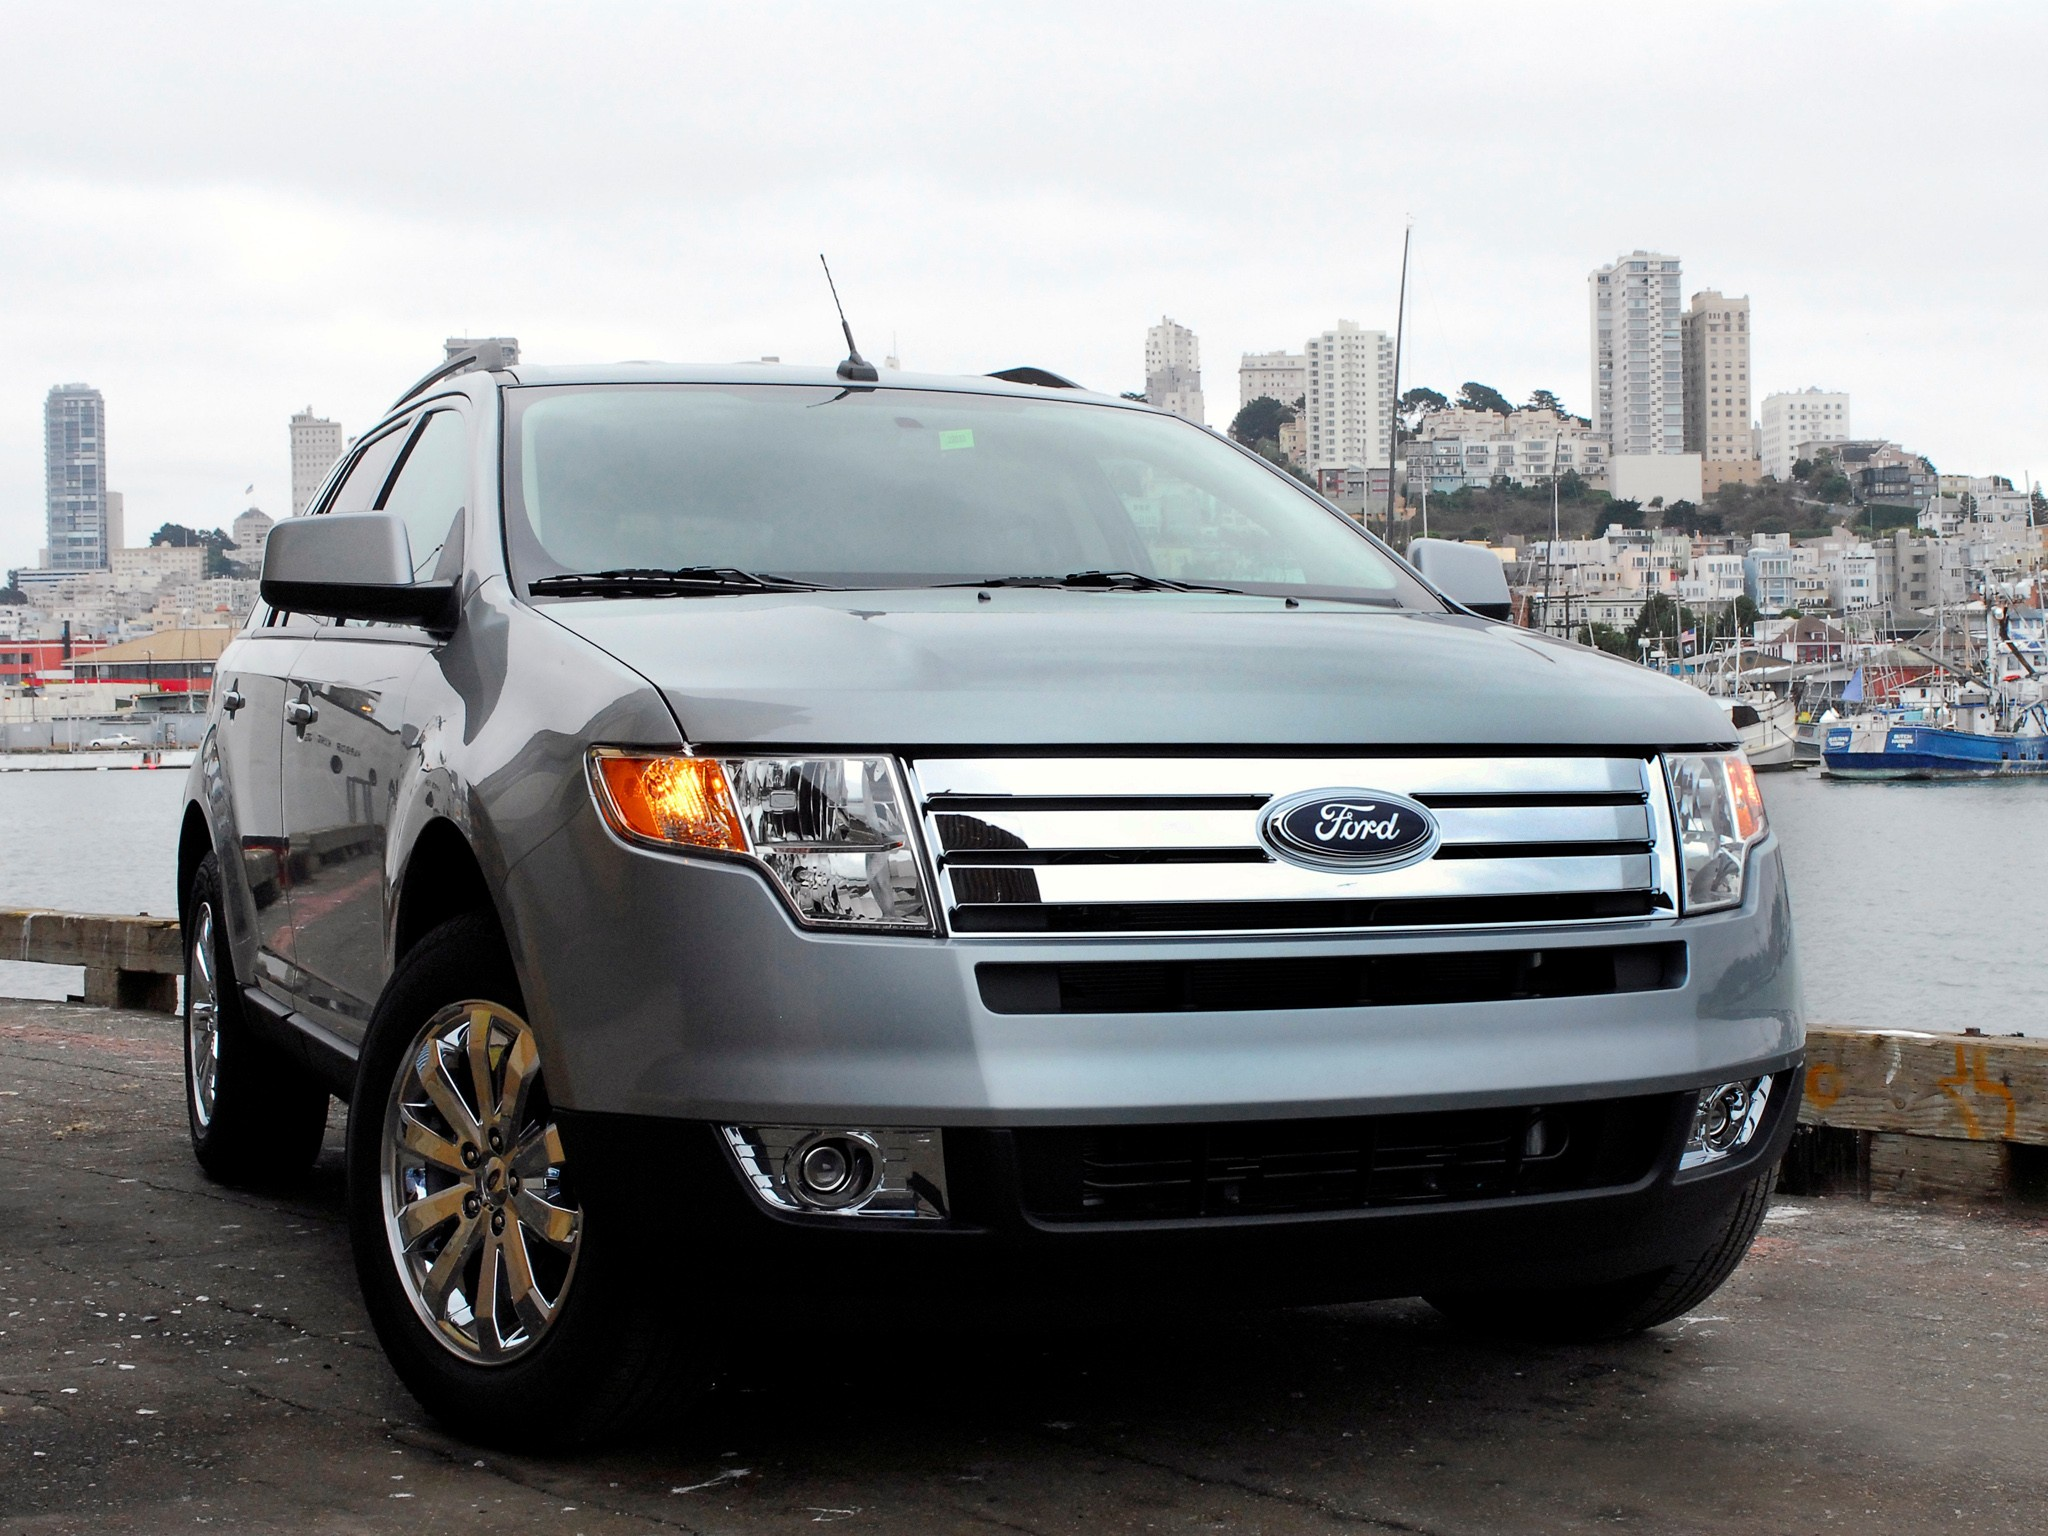 Ford Edge on Ford Duratec V6 Engine